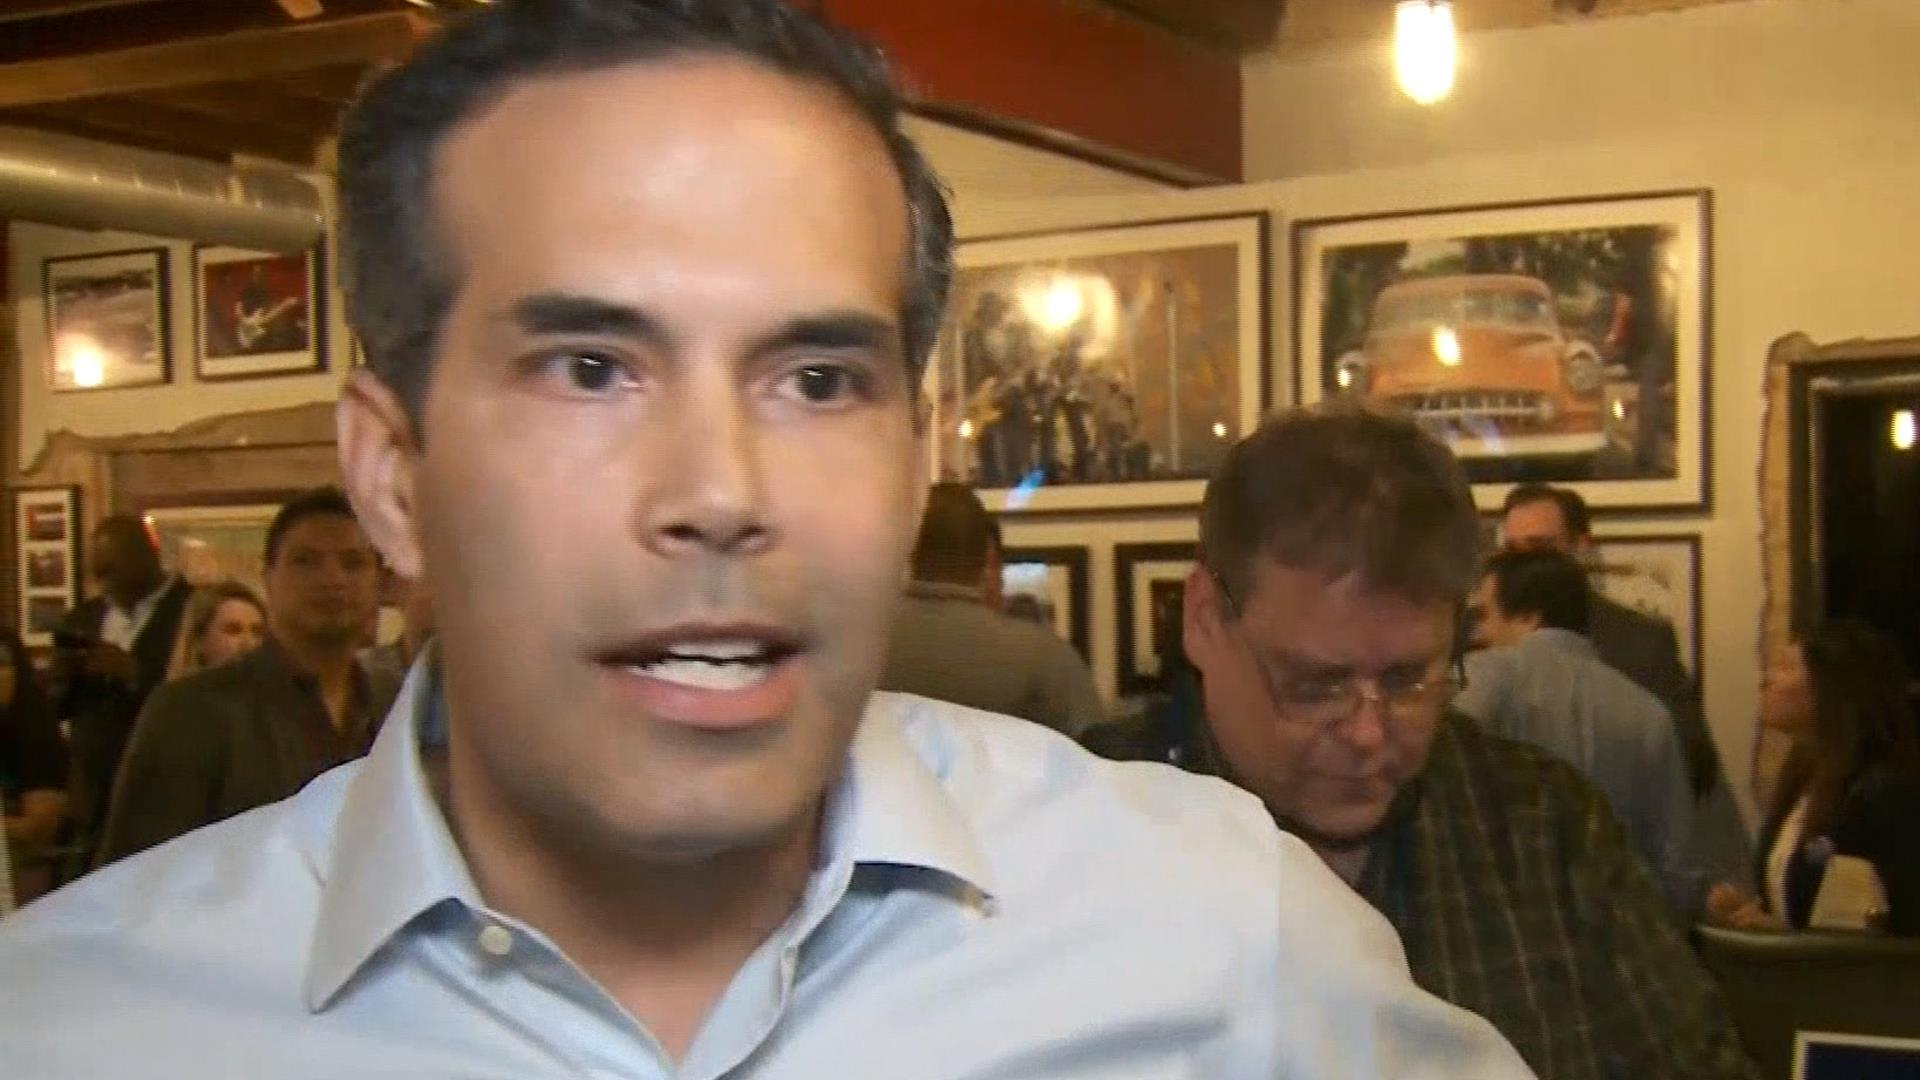 George P. Bush wins Republican primary race for Texas land commissioner